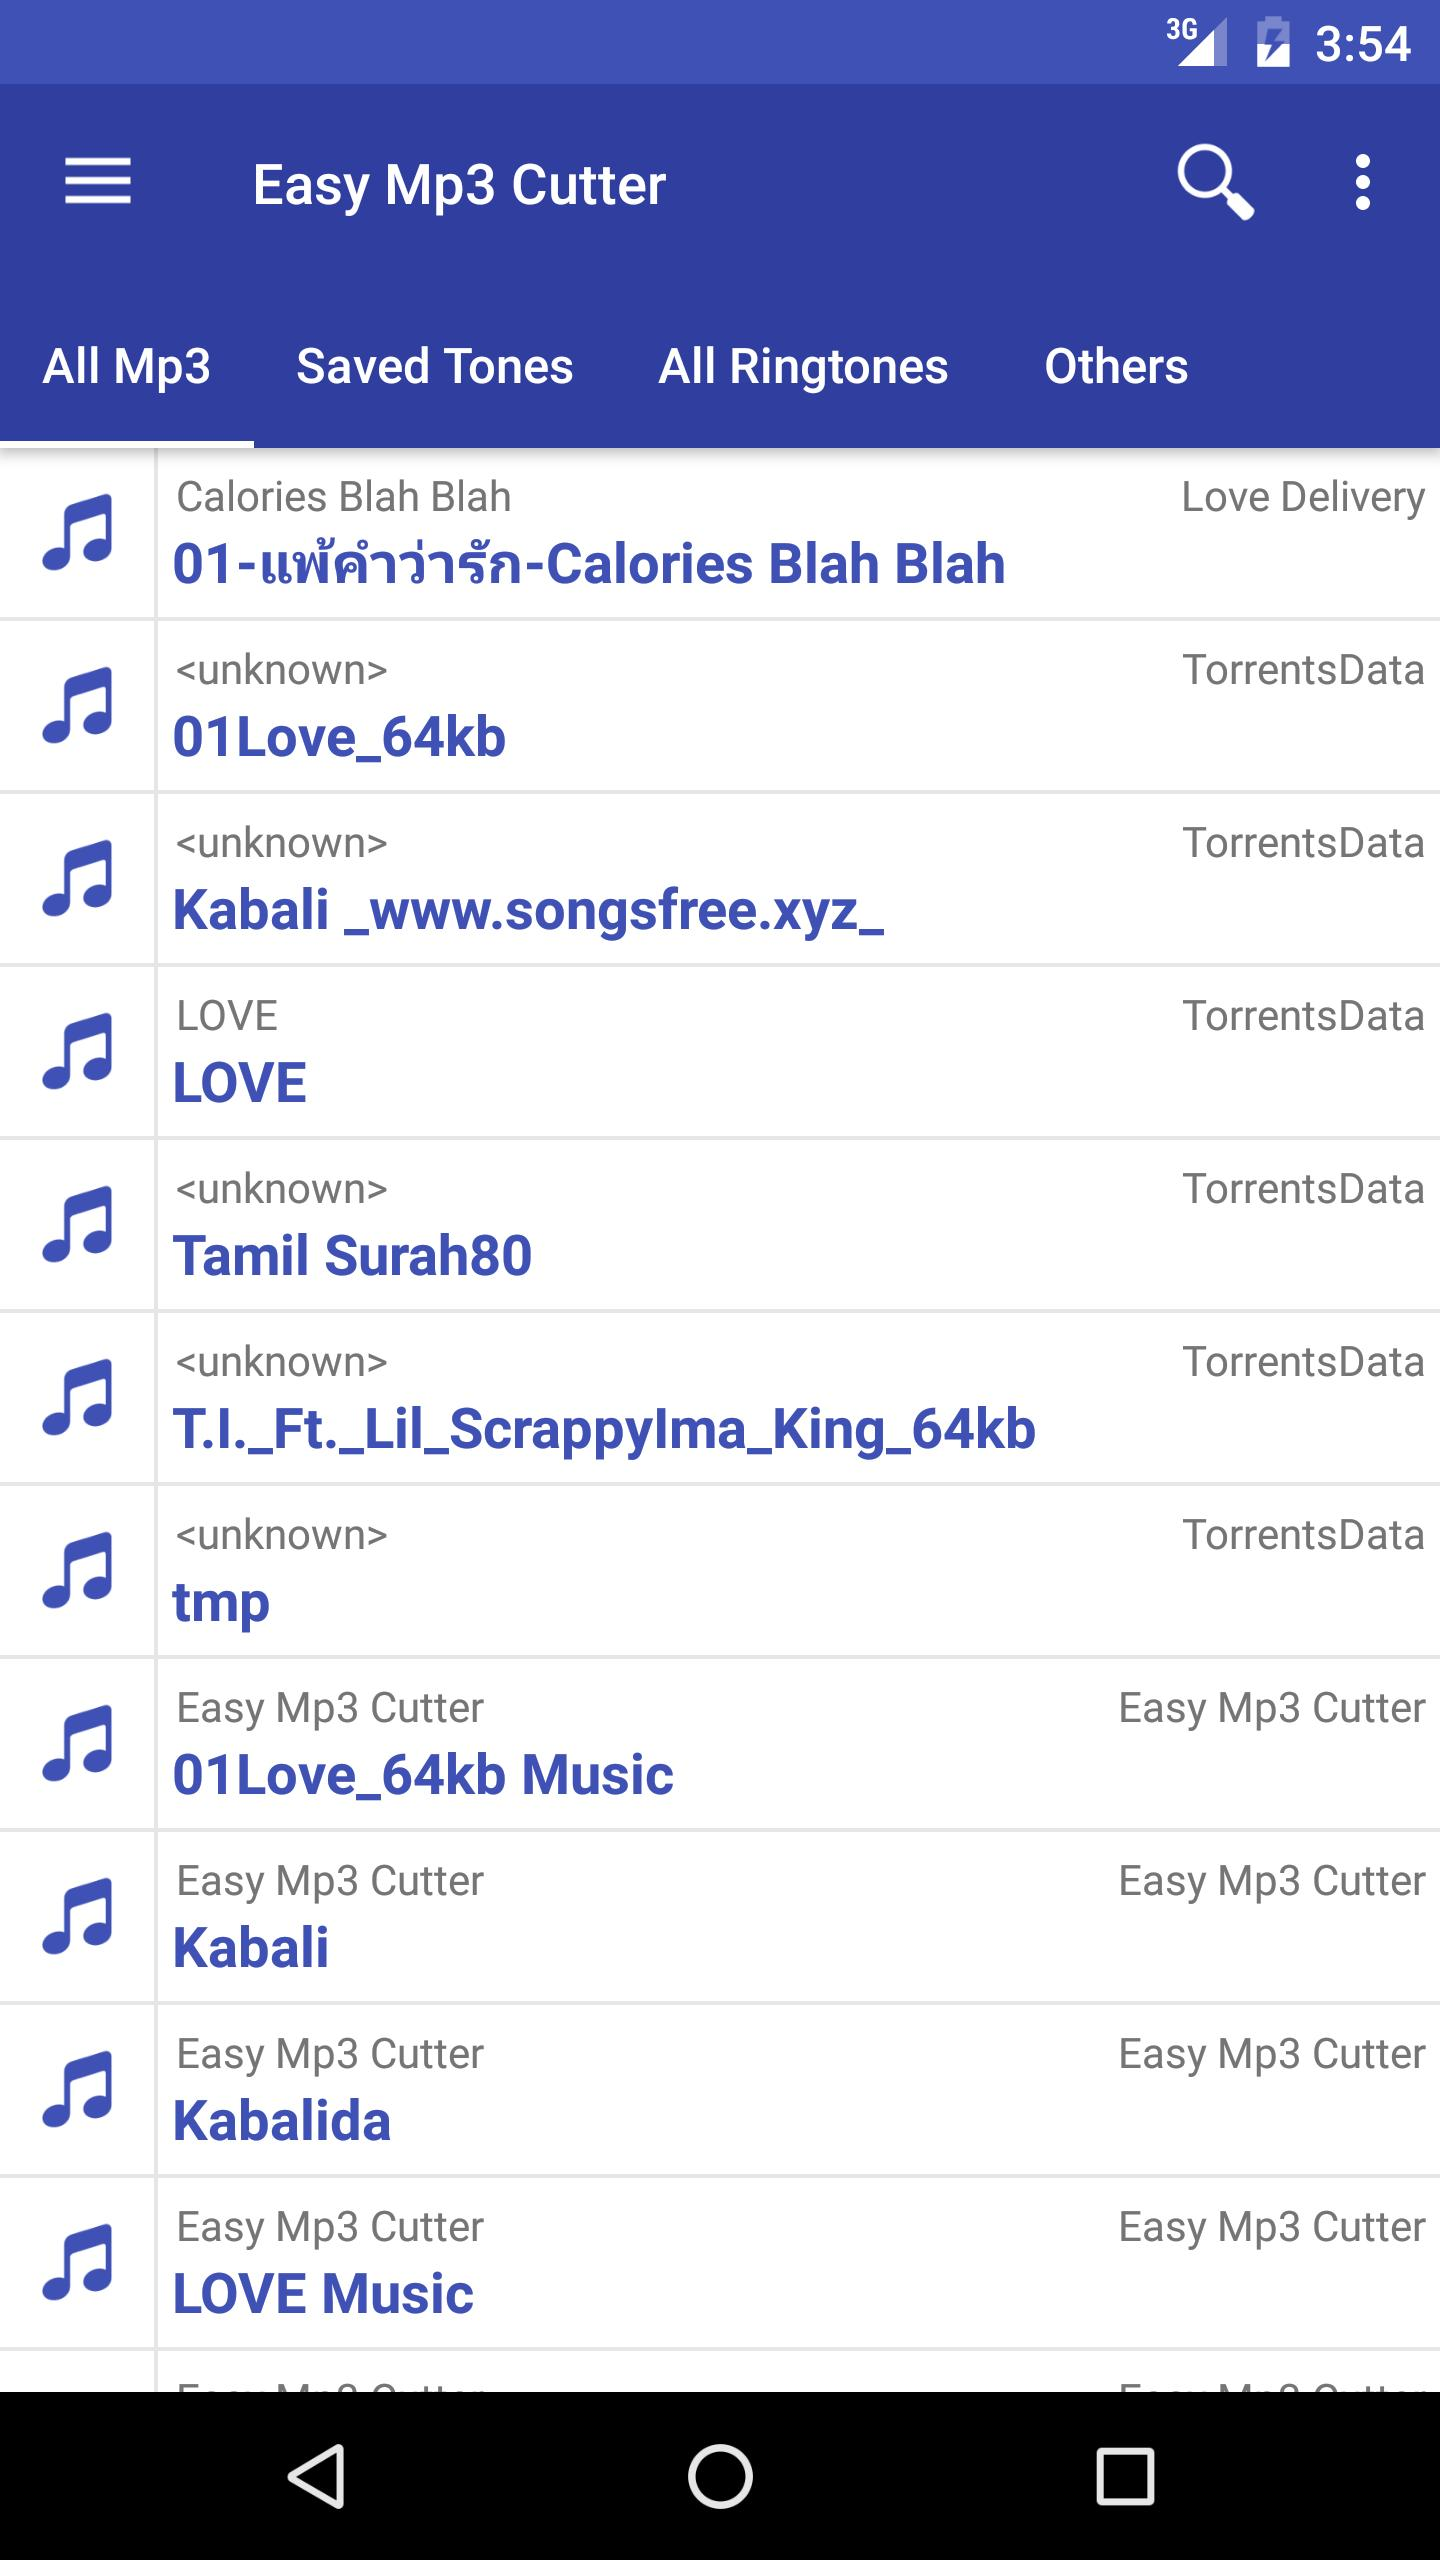 Easy Mp3 Cutter RingTone Maker for Android - APK Download